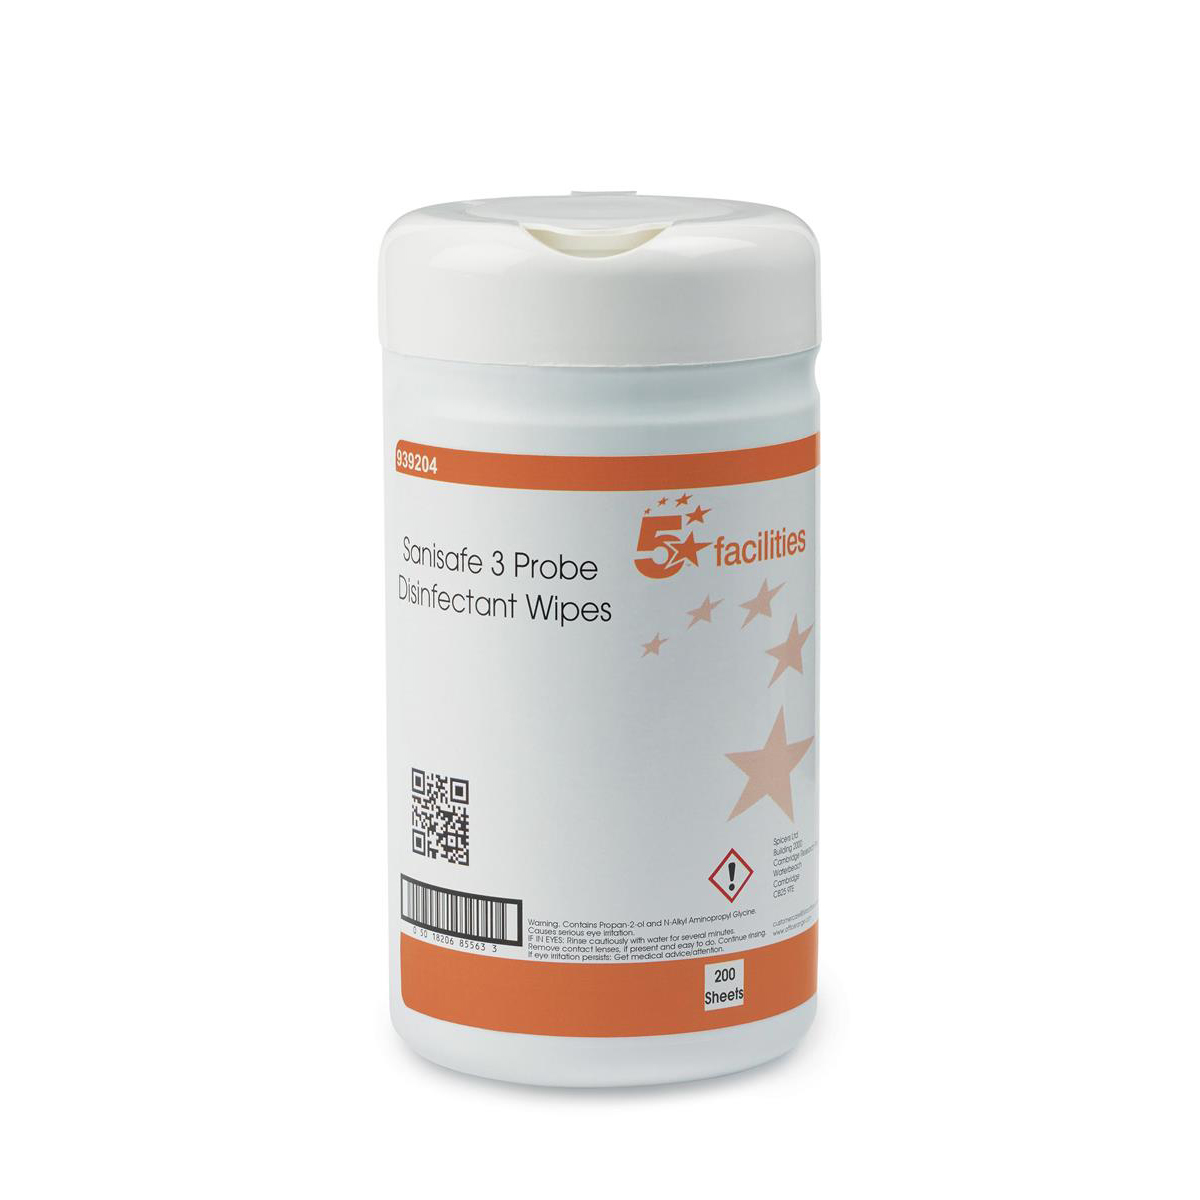 5 Star Facilities Probe Disinfectant Wipes Anti-bac PHMB-free BPR Low-residue 130x130mm 200 Wipes